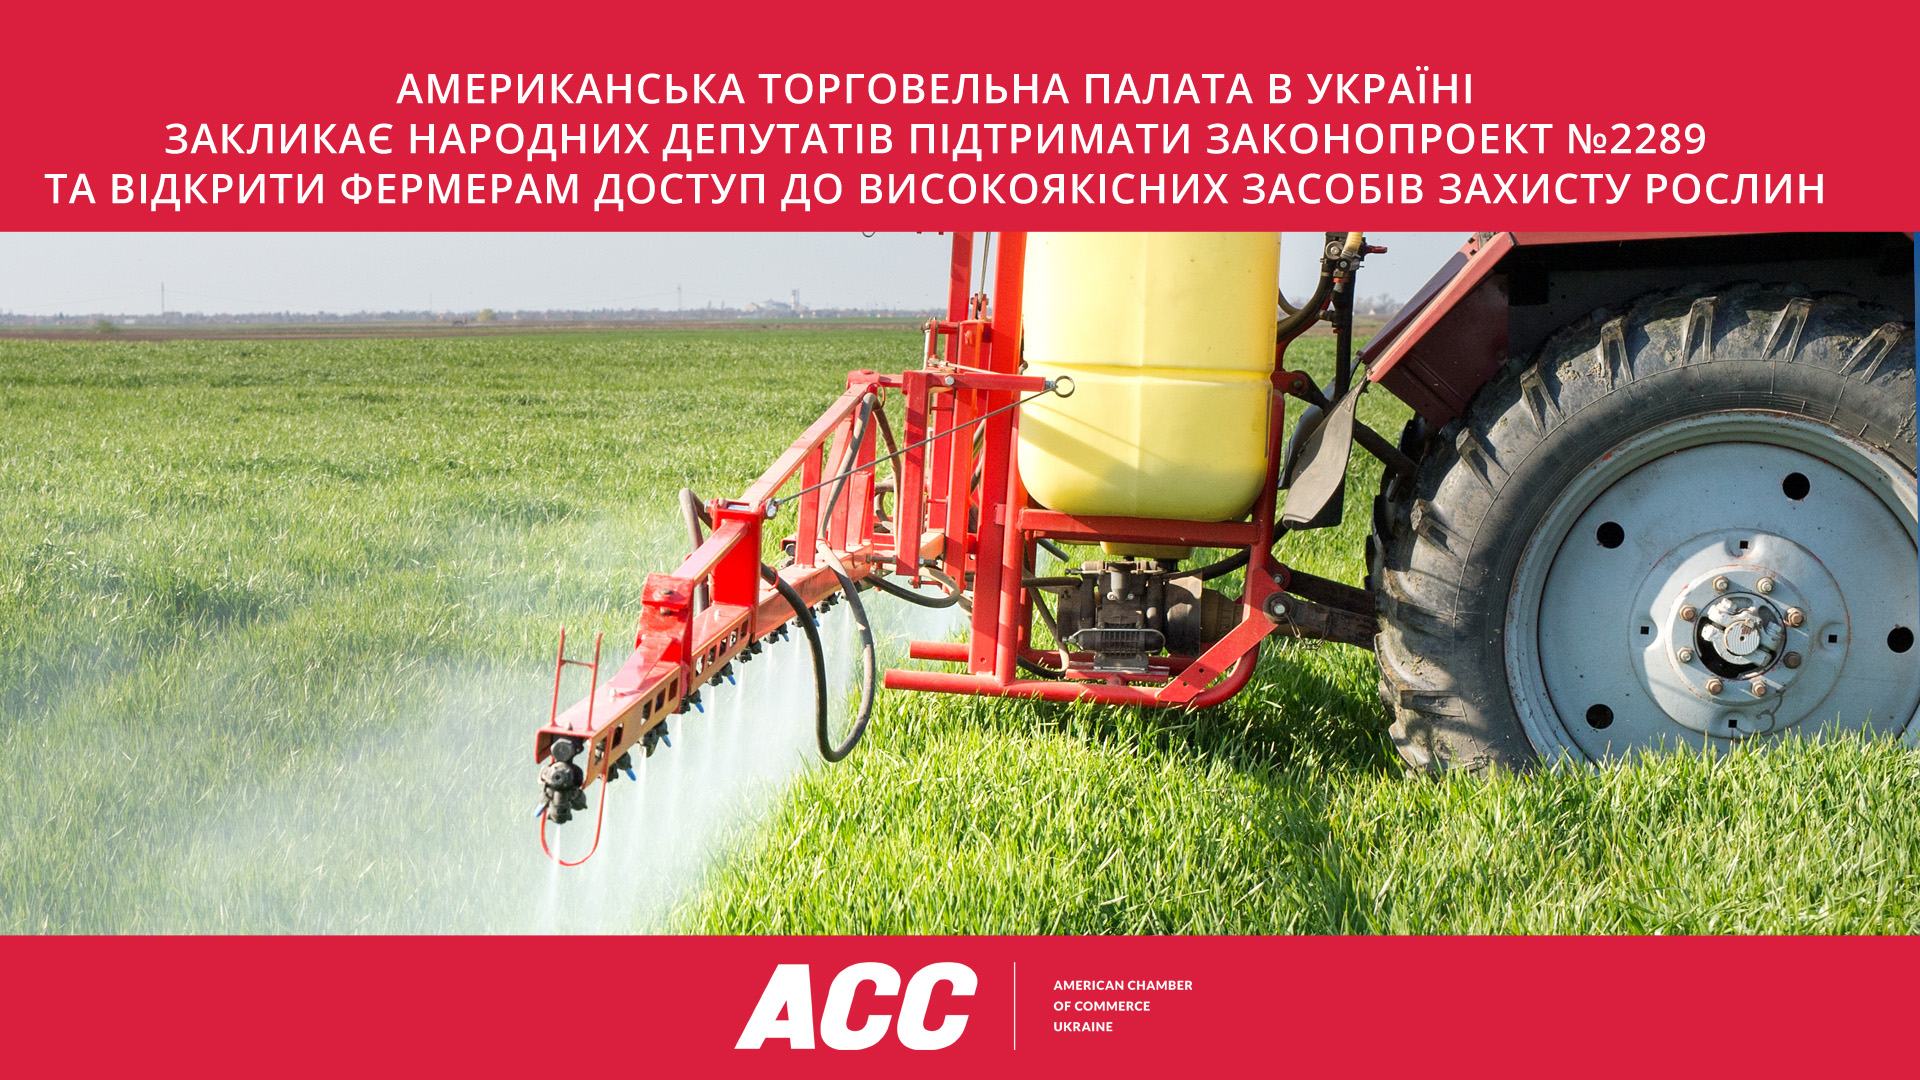 The American Chamber of Commerce Calls on MPs to Give Ukrainian Farmers Access to Quality Crop Protection Products